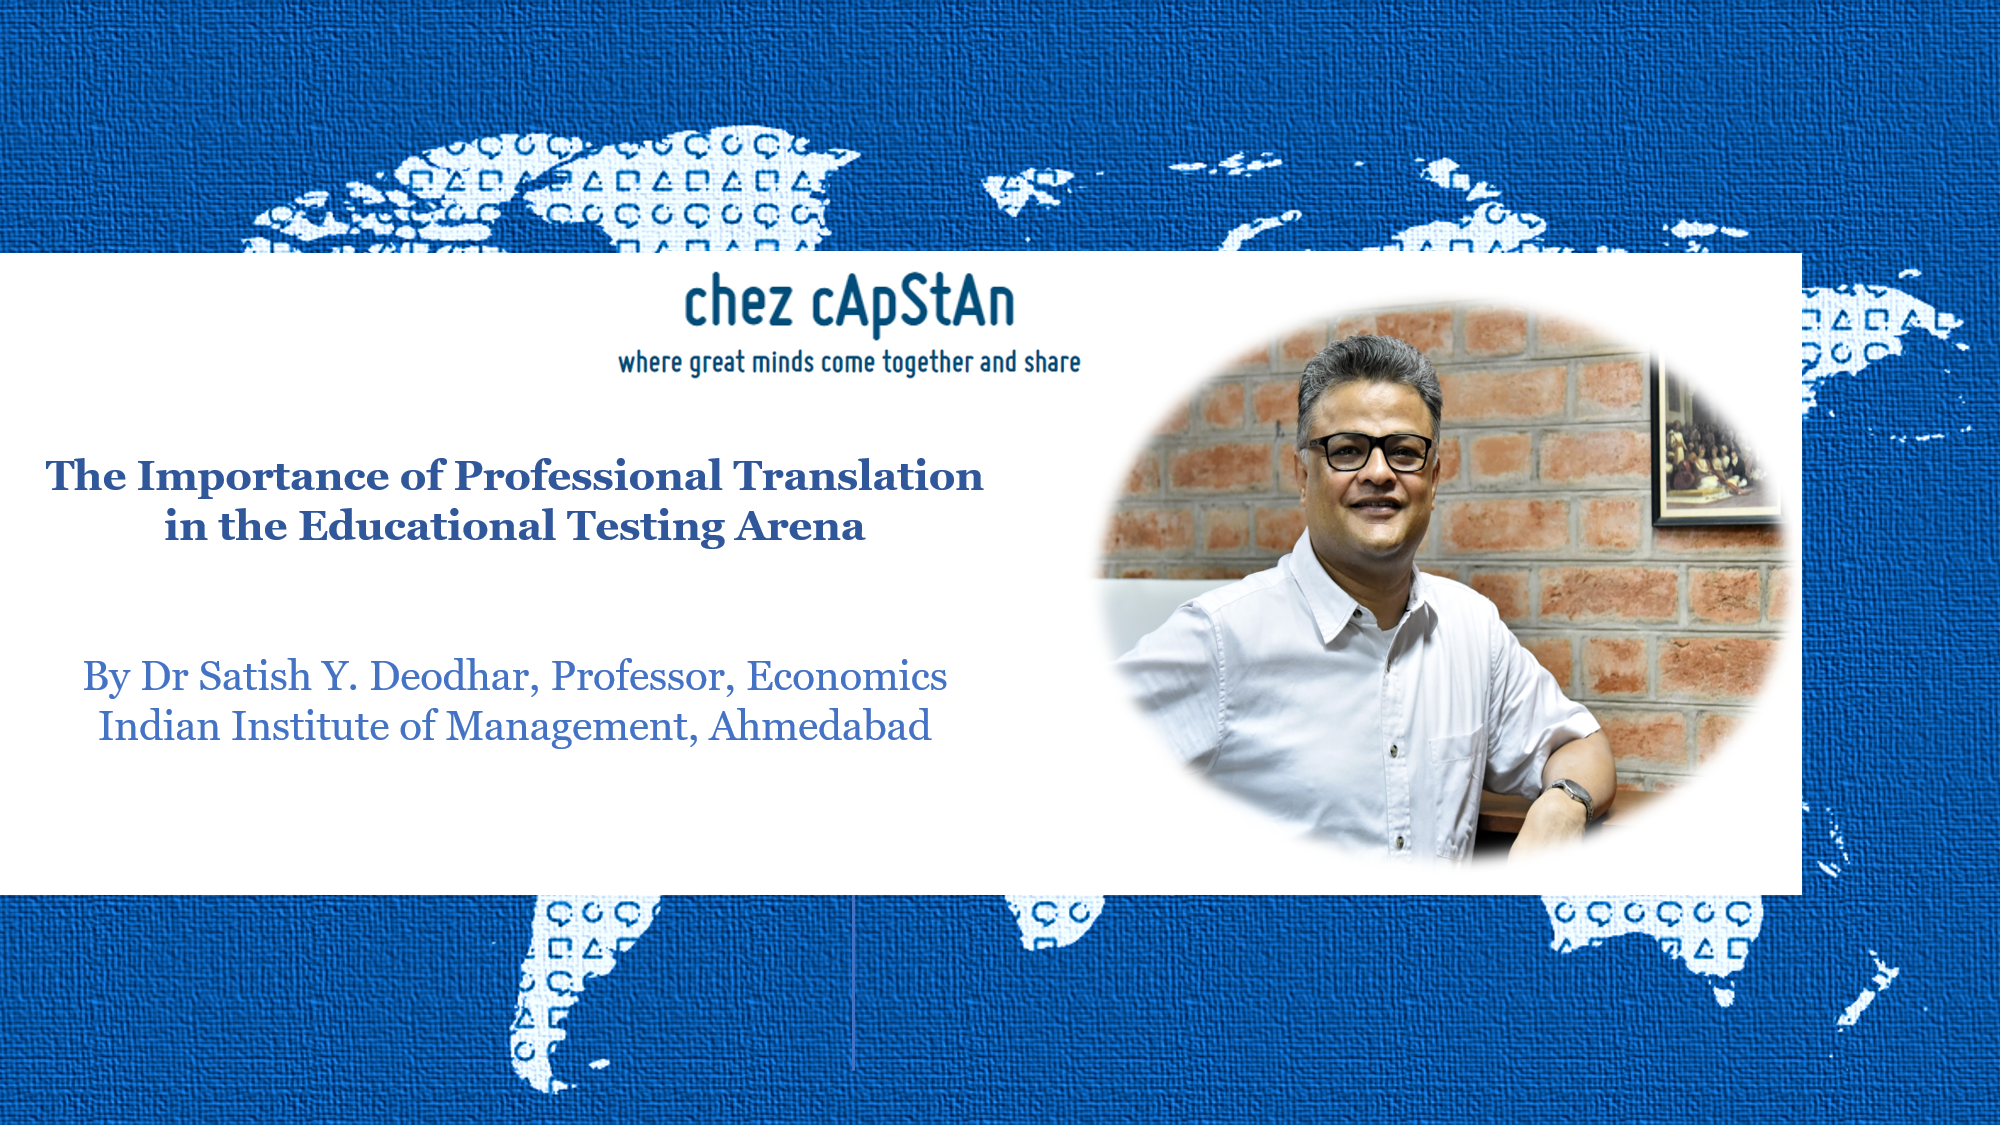 The Importance of Professional Translation in the Educational Testing Arena: Dr Satish Y. Deodhar | IIM-A